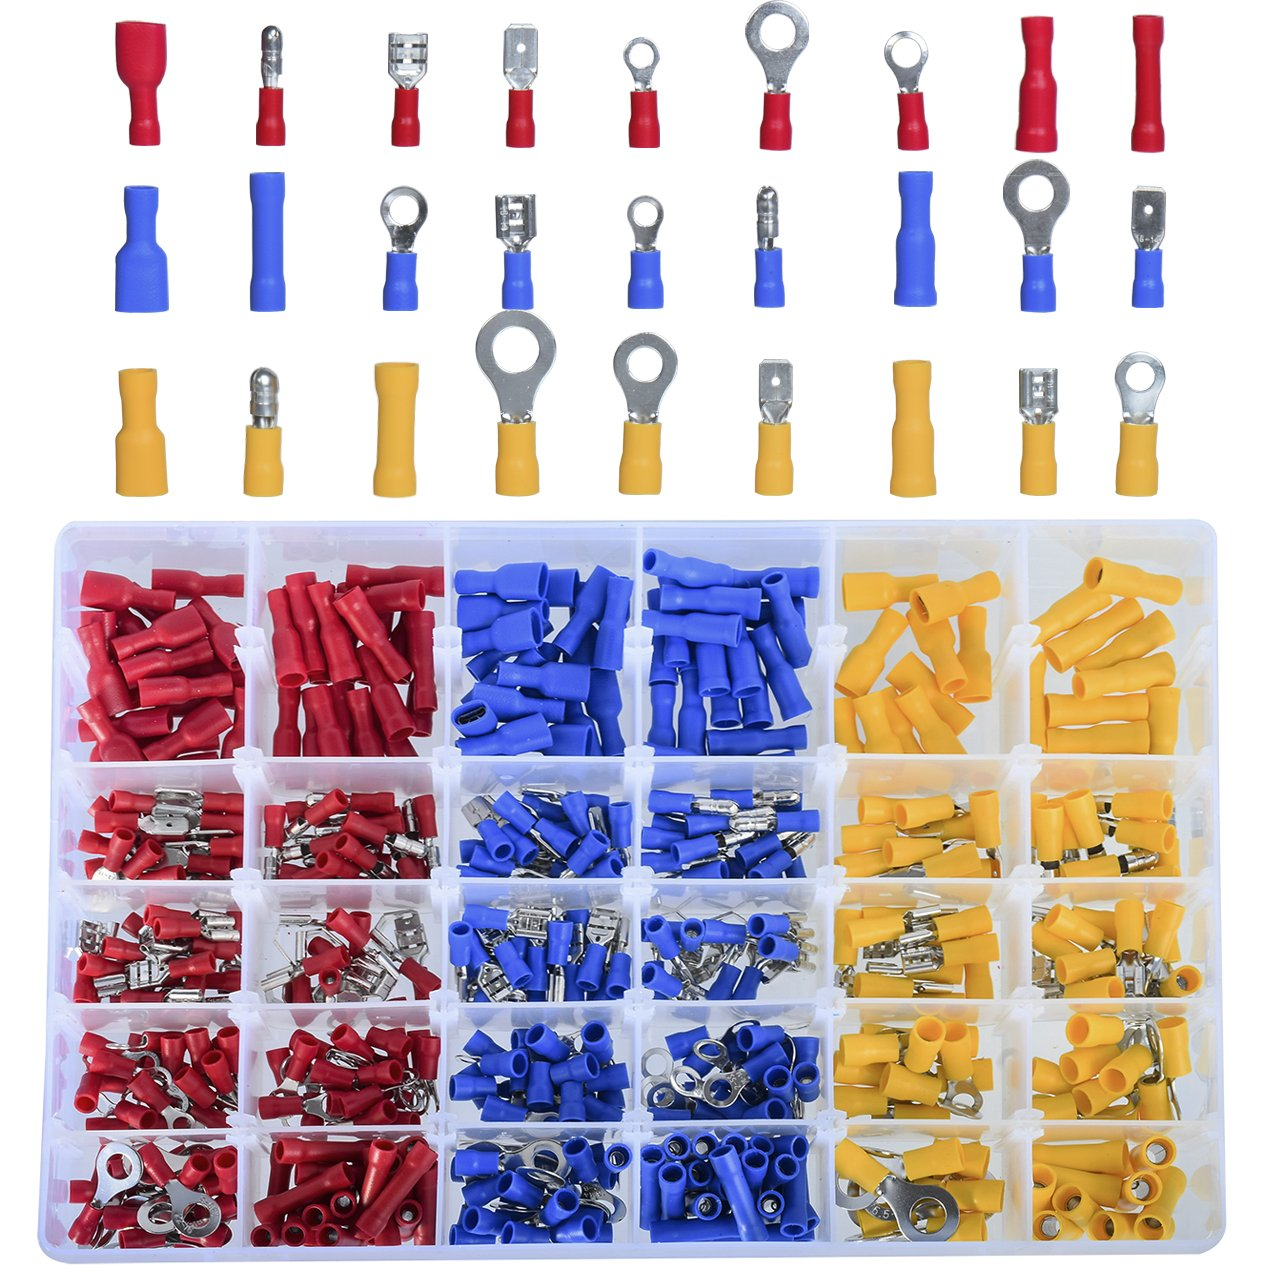 Spade Terminals S14 Fuse Box On Side Of Plugs Dedc 480pcs Insulated Wiring Wire Connectors Assortment Electrical Crimp Kit Cable Terminal